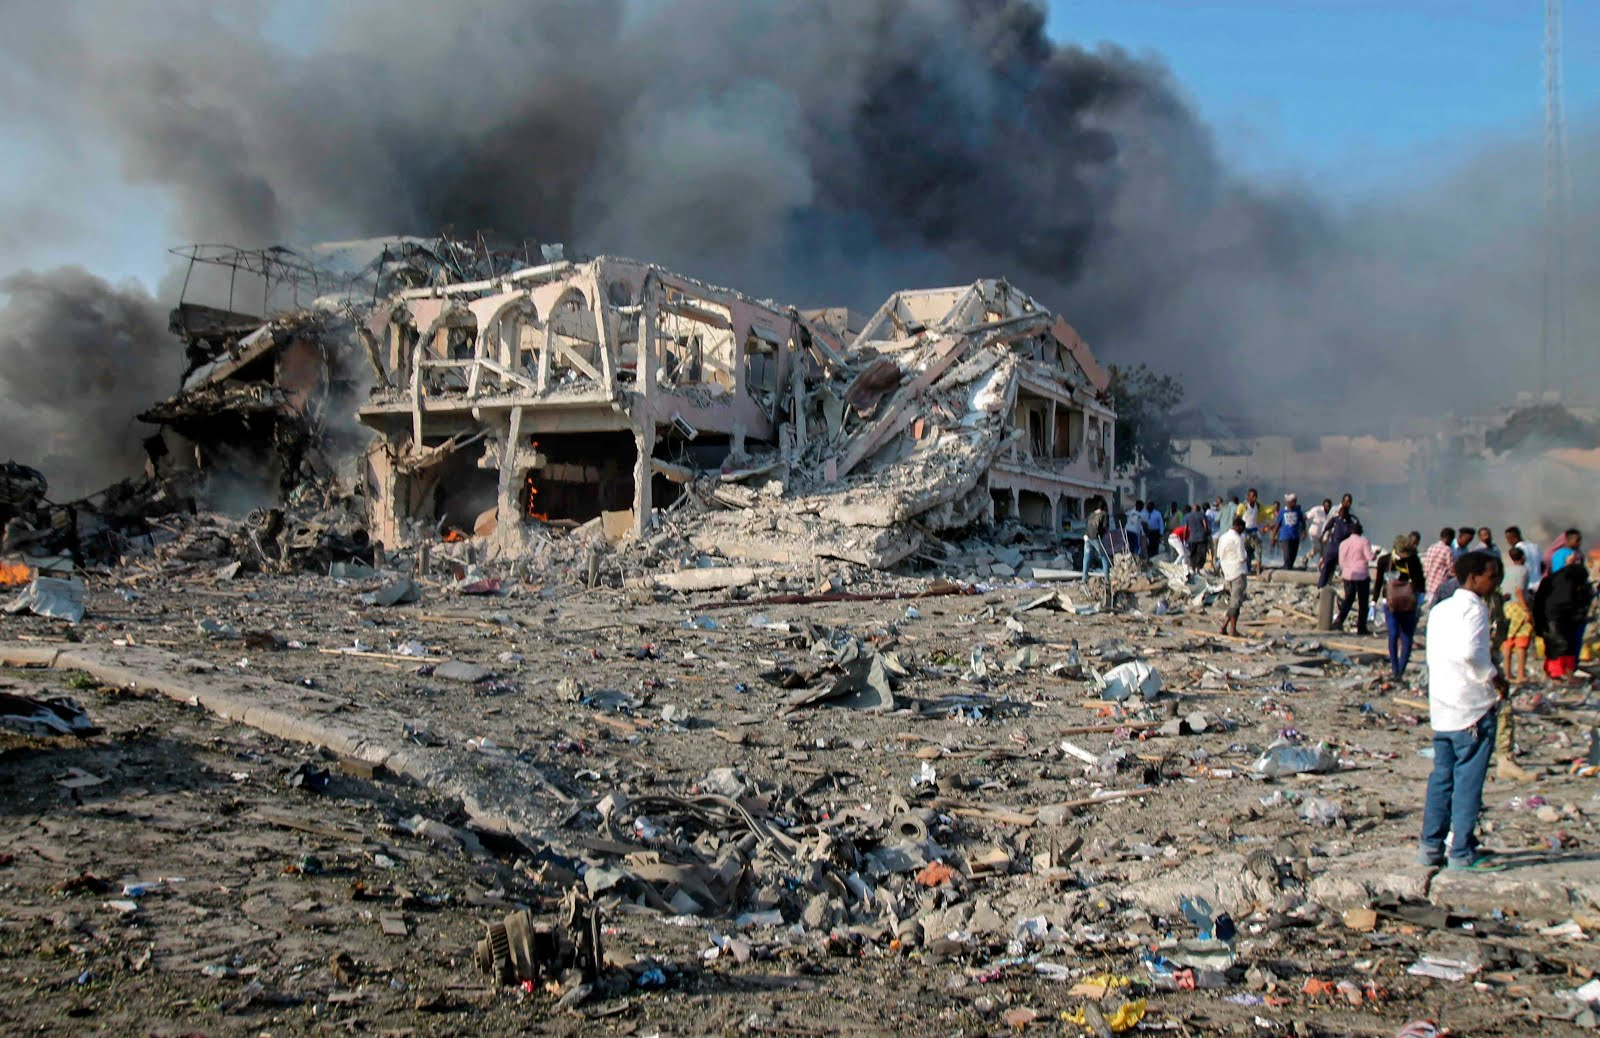 SOMALIA TERRORIST ATTACK LEAVES HUNDREDS DEAD.